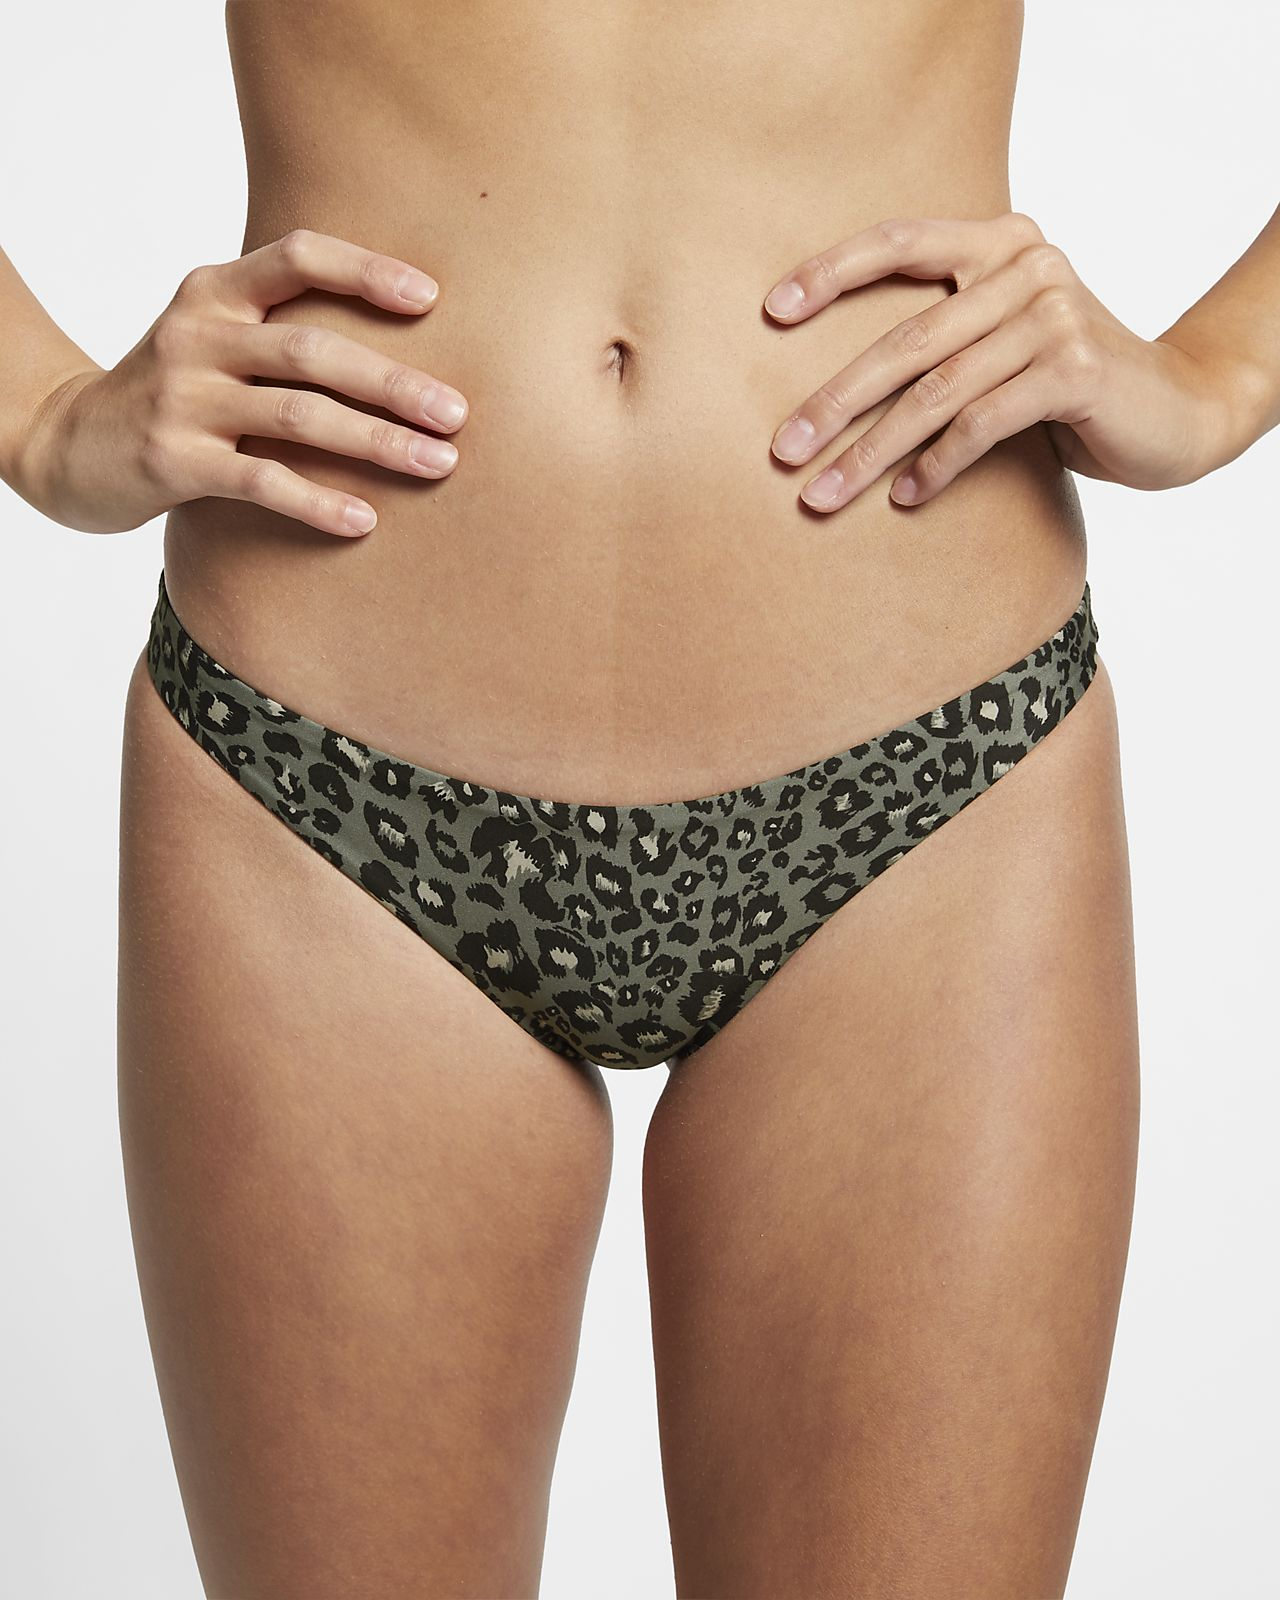 Hurley Quick-Dry Women's Leopard Surf Bottoms